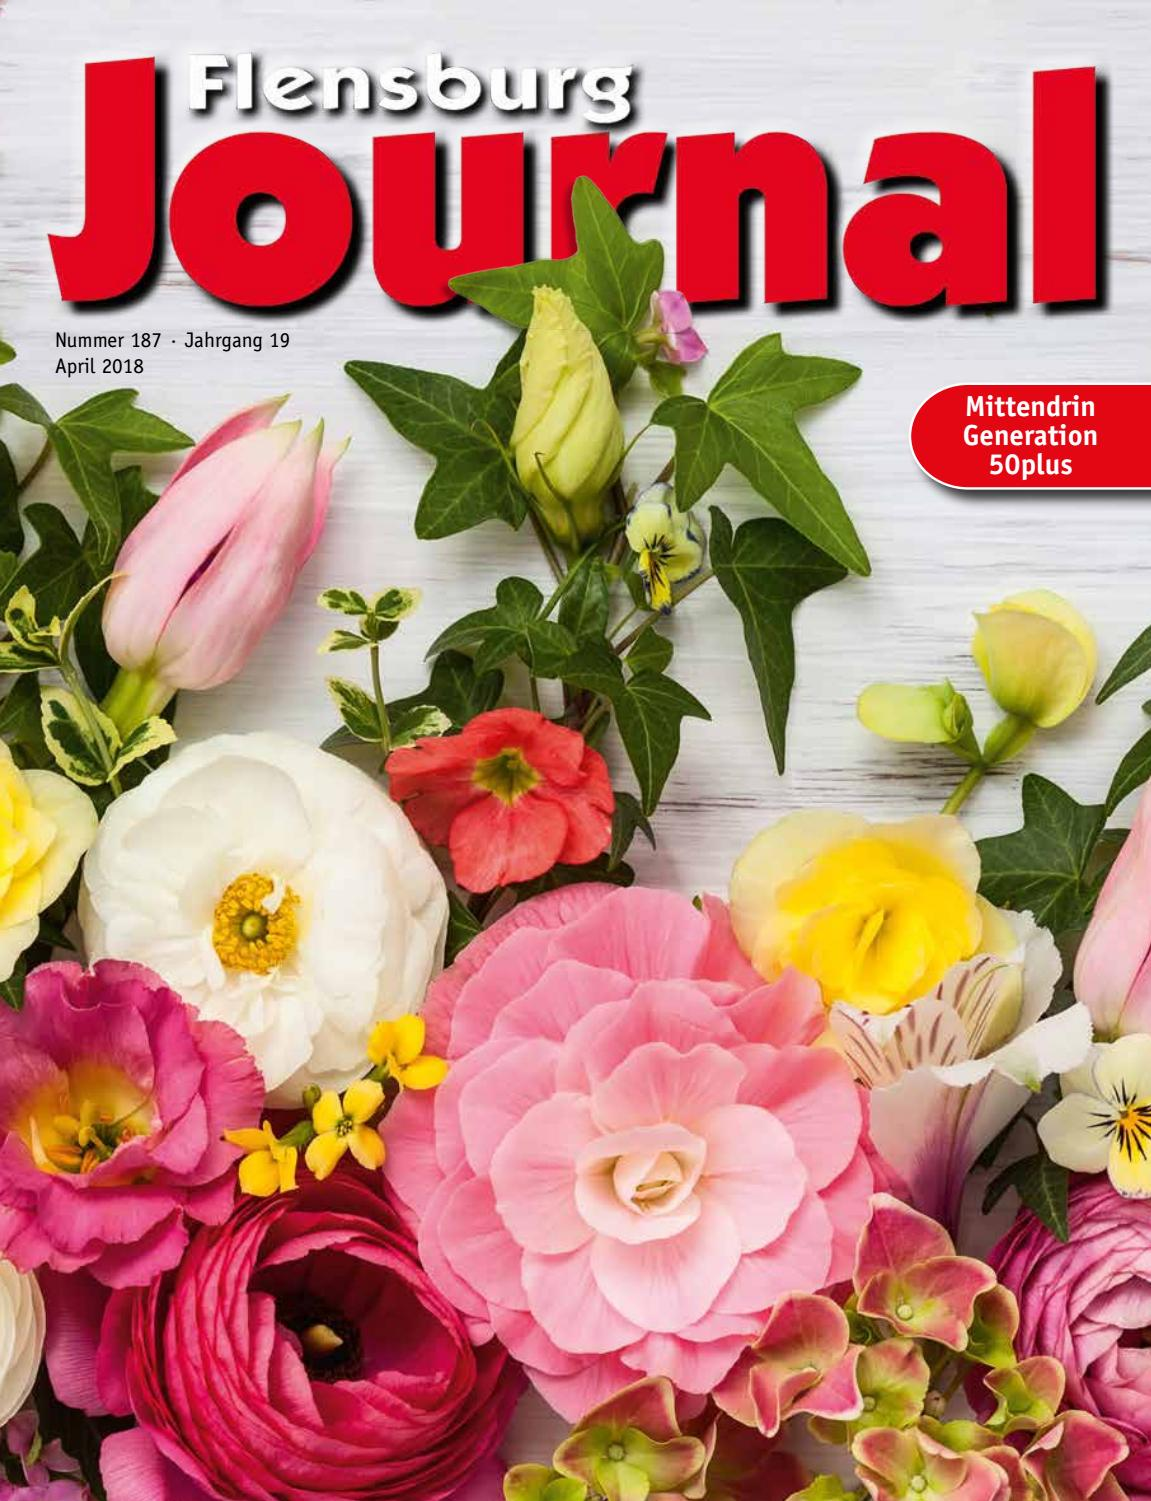 Flensburg Journal 187 - April 2018 by verlagskontor-adler - issuu